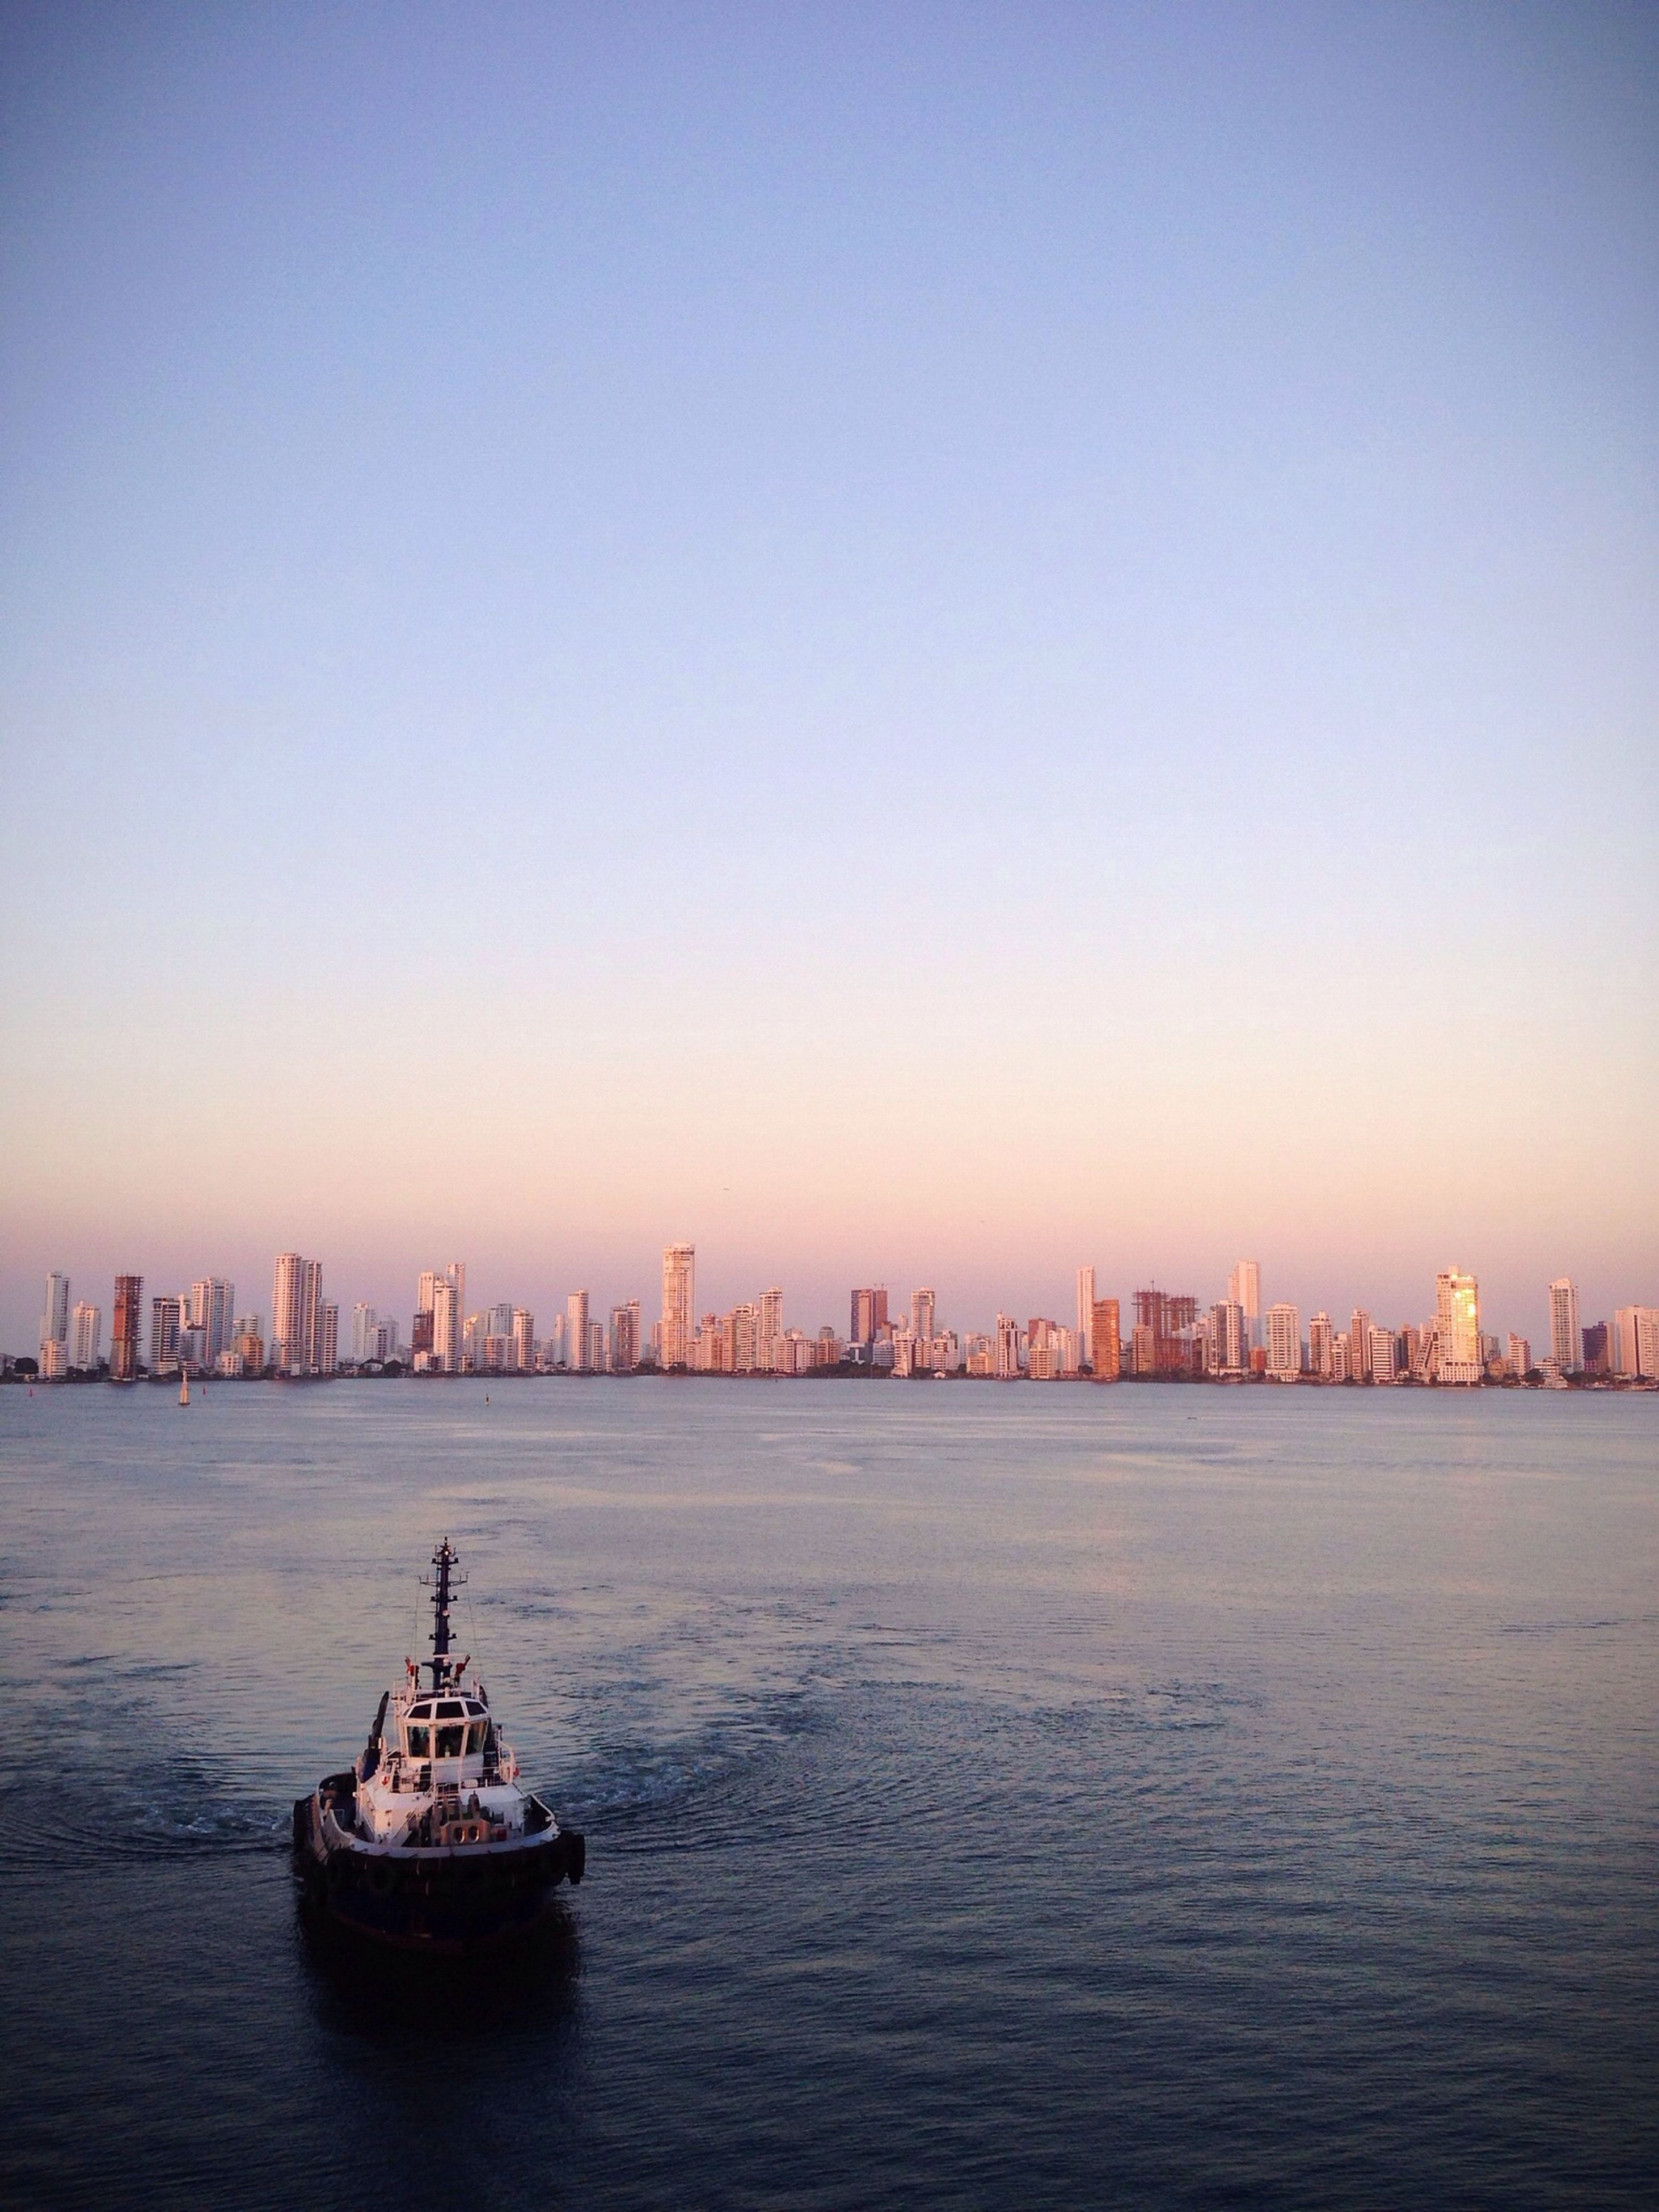 waterfront, water, nautical vessel, building exterior, architecture, sea, built structure, city, transportation, copy space, boat, cityscape, mode of transport, clear sky, river, urban skyline, sunset, harbor, skyscraper, sky